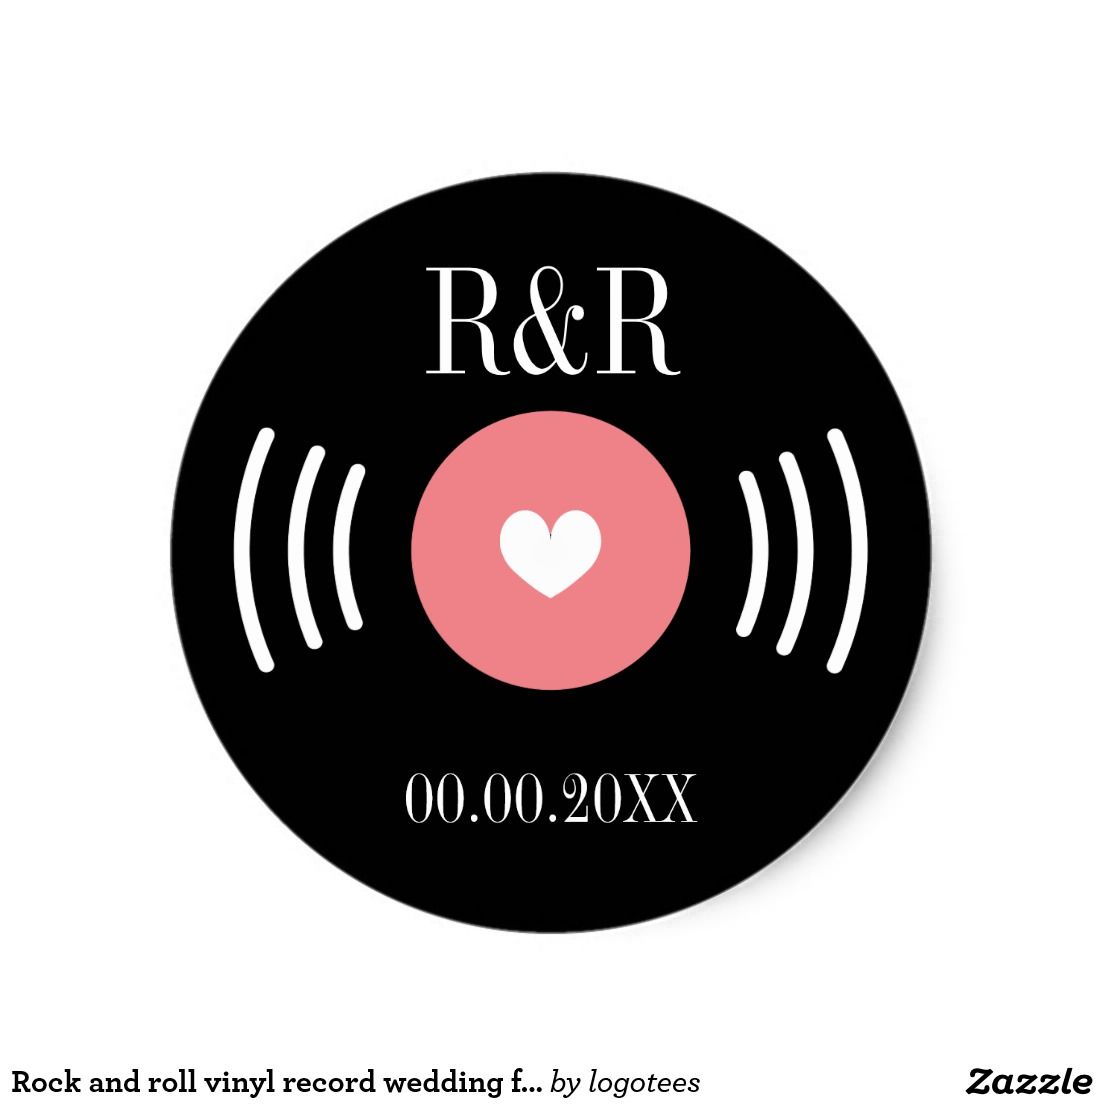 Rock and roll vinyl record wedding favor sticker | Favours, Music ...